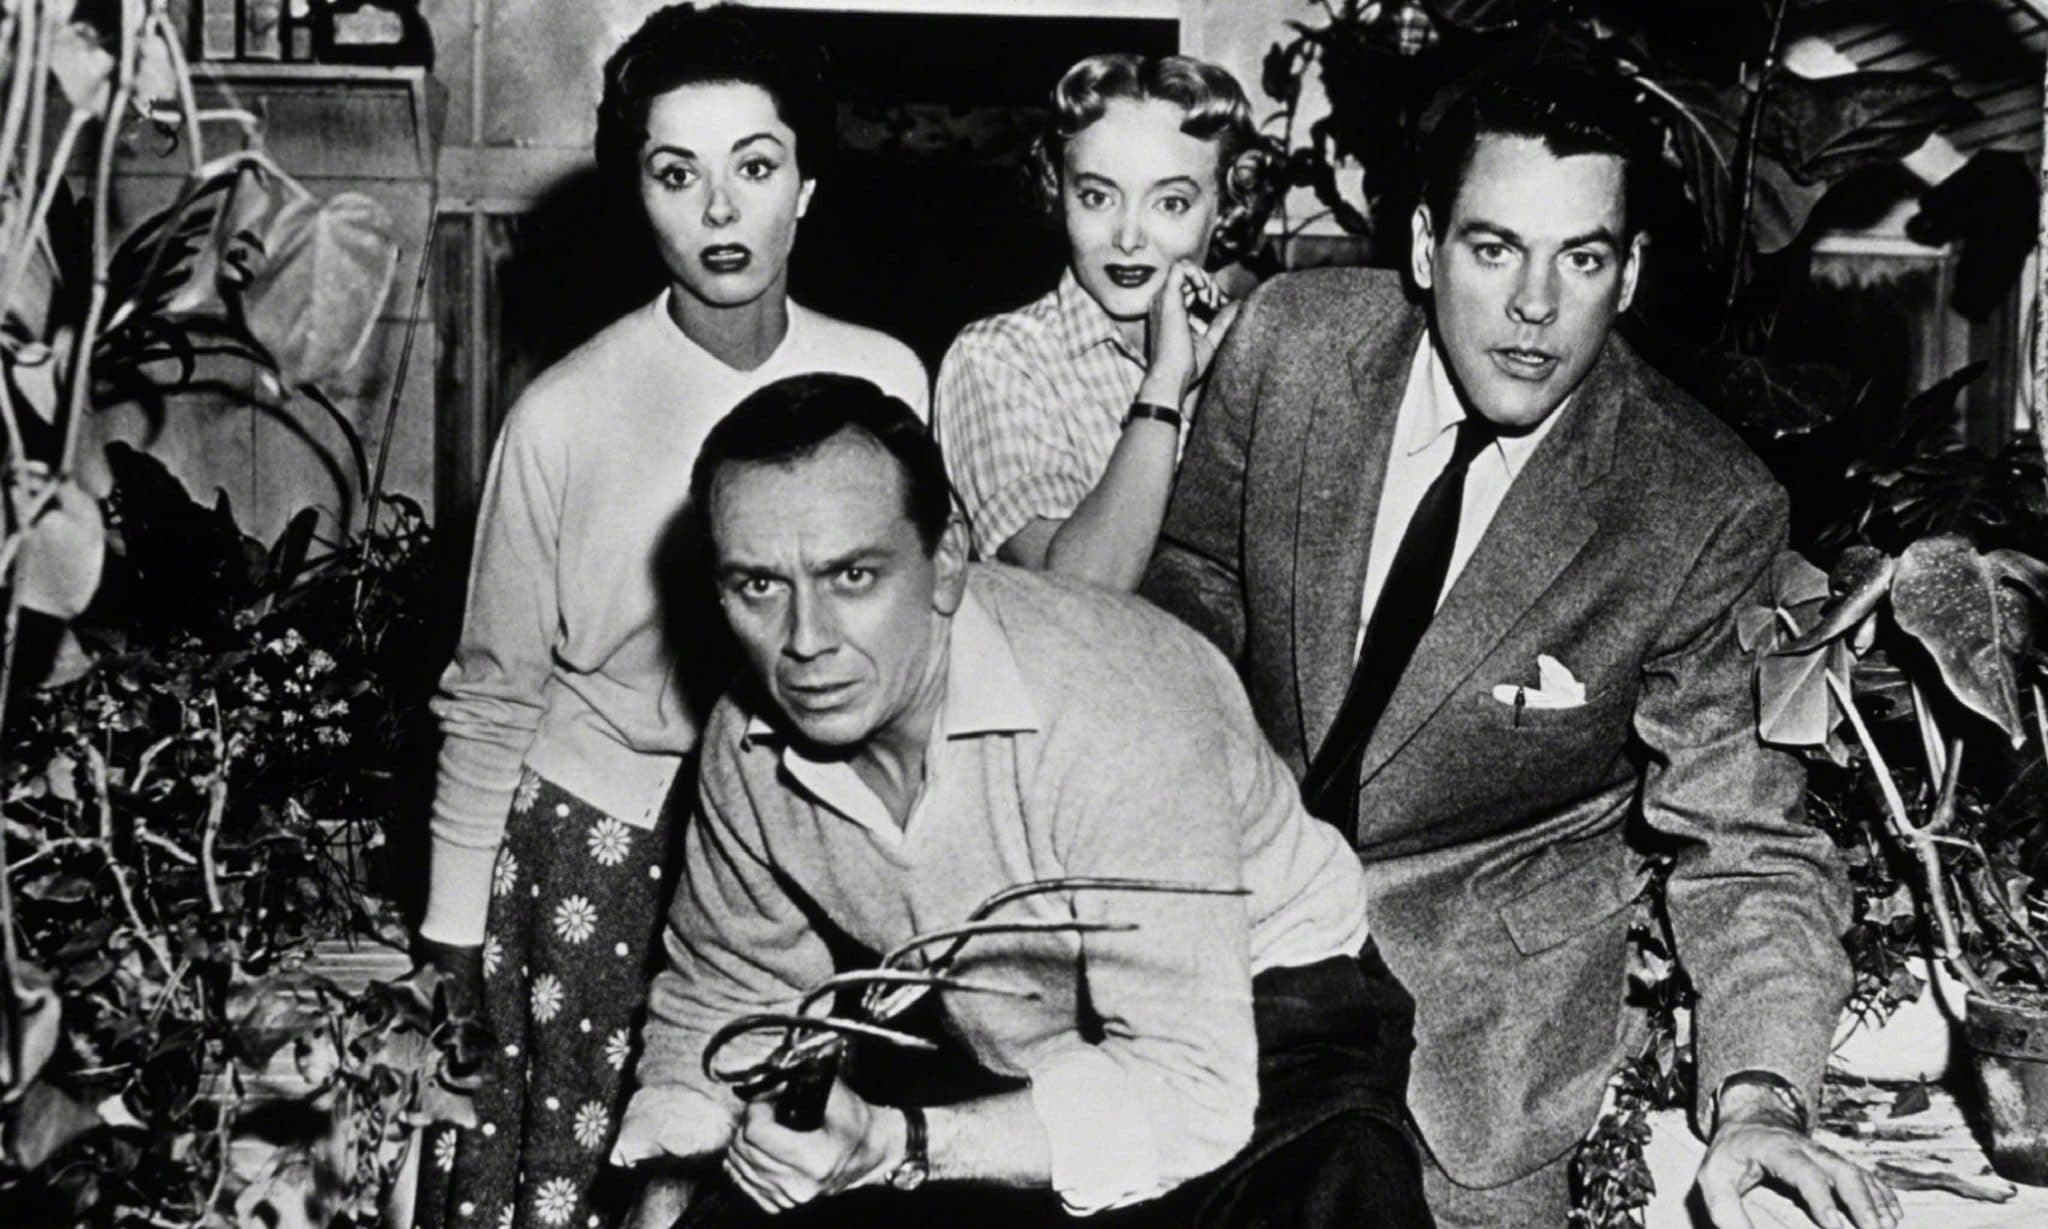 [Silver Screams] INVASION OF THE BODY SNATCHERS (1956) - A Timely Parable of Paranoia